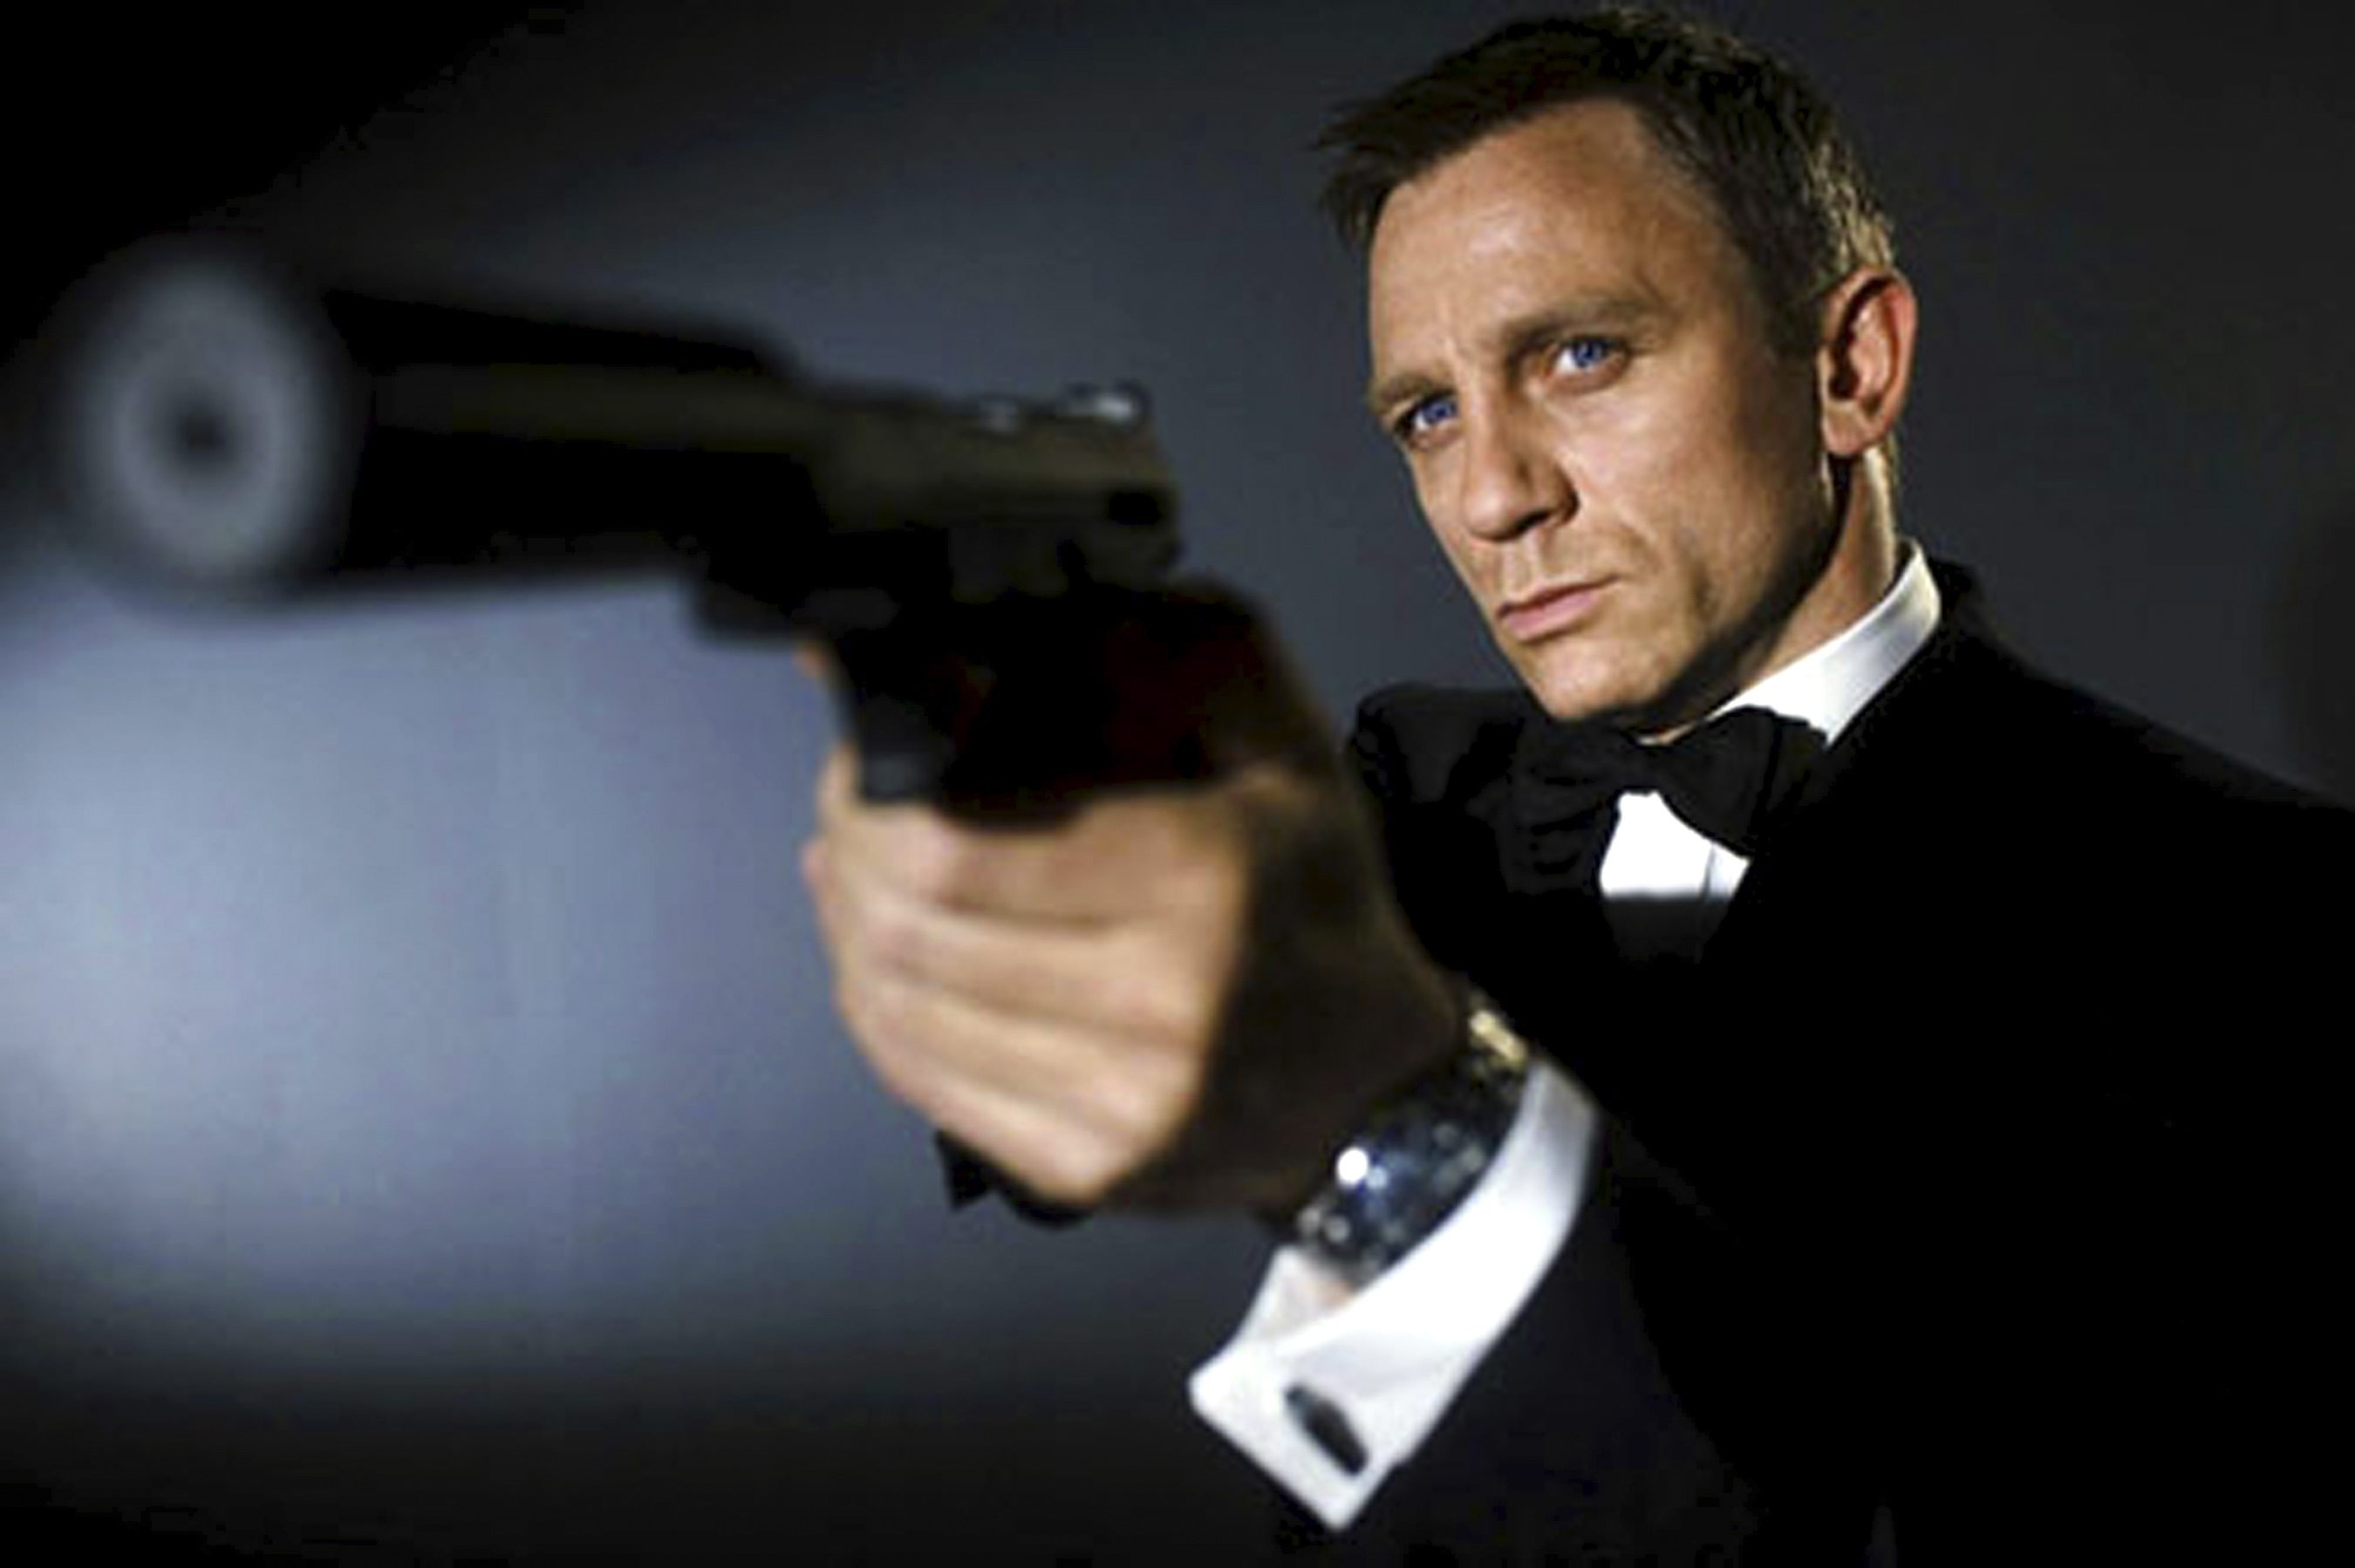 James Bond Filme Darsteller